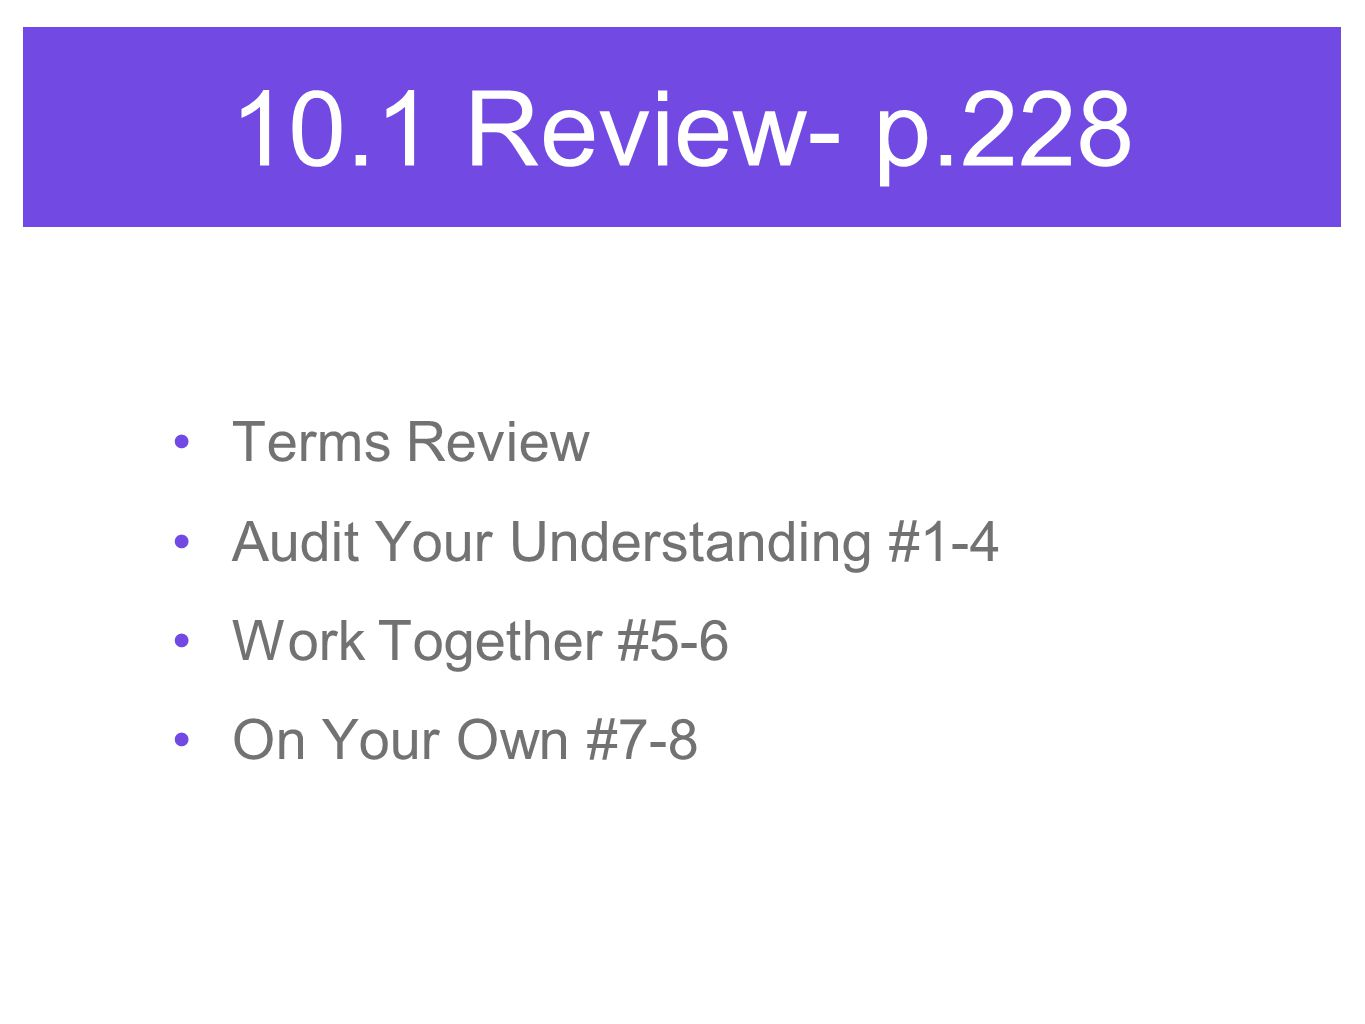 10.1 Review- p.228 Terms Review Audit Your Understanding #1-4 Work Together #5-6 On Your Own #7-8